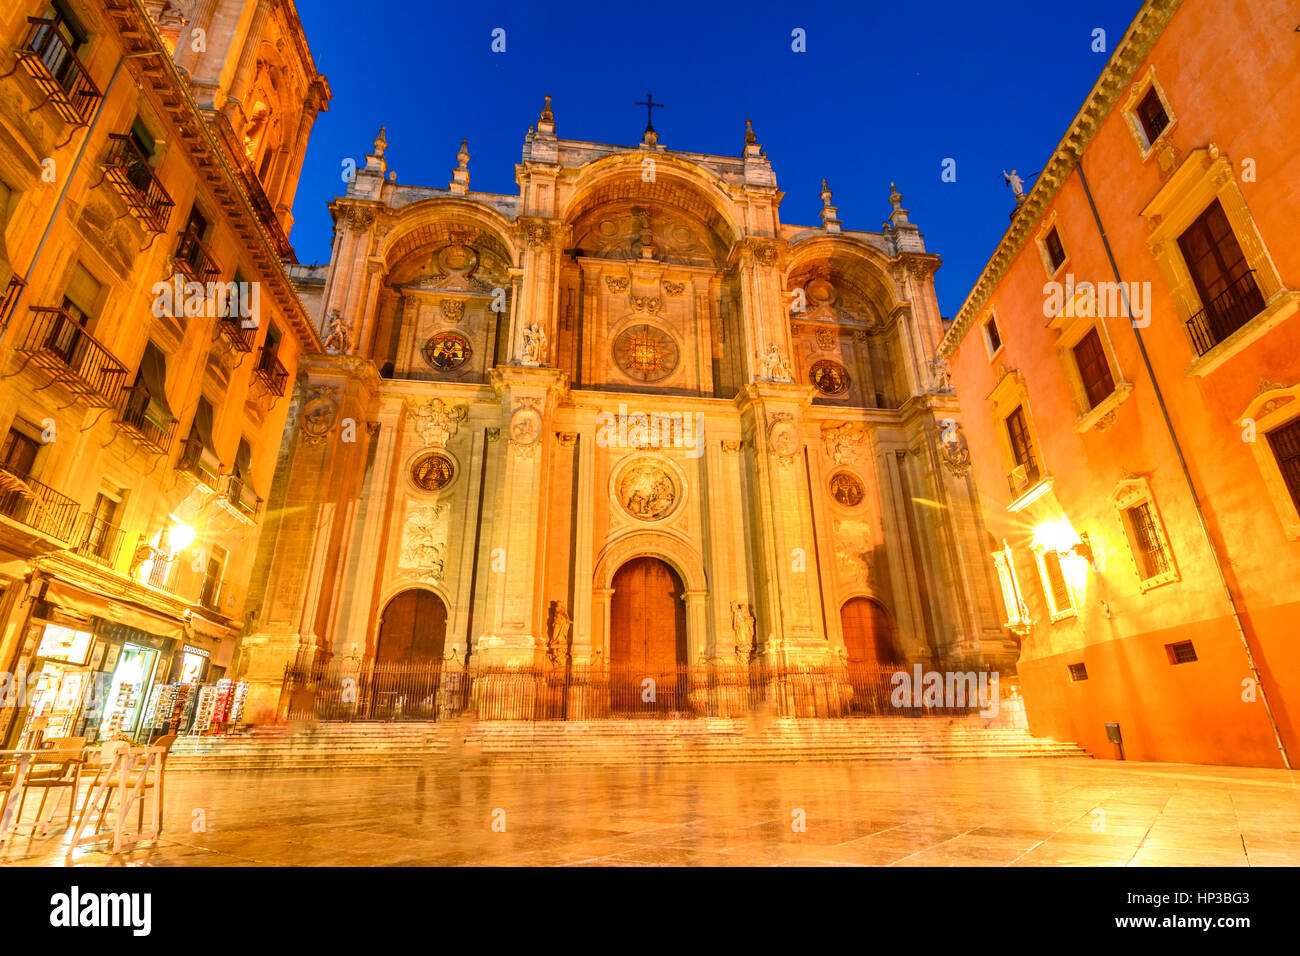 Facade of the renaissance cathedral, Granada, Andalusia Spain Stock Photo